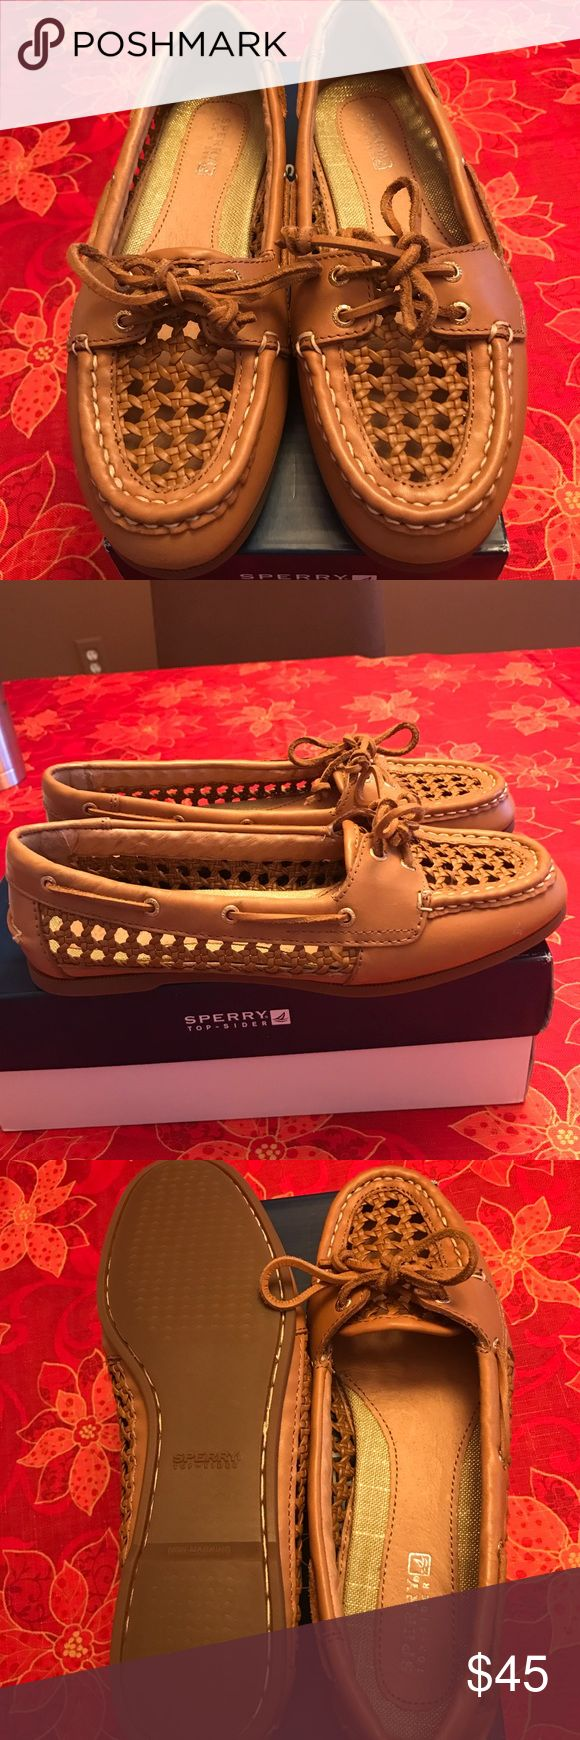 Tan/light brown boat shoes BRAND NEW!!! Never worn braided boat shoes! Sperry Shoes Flats & Loafers